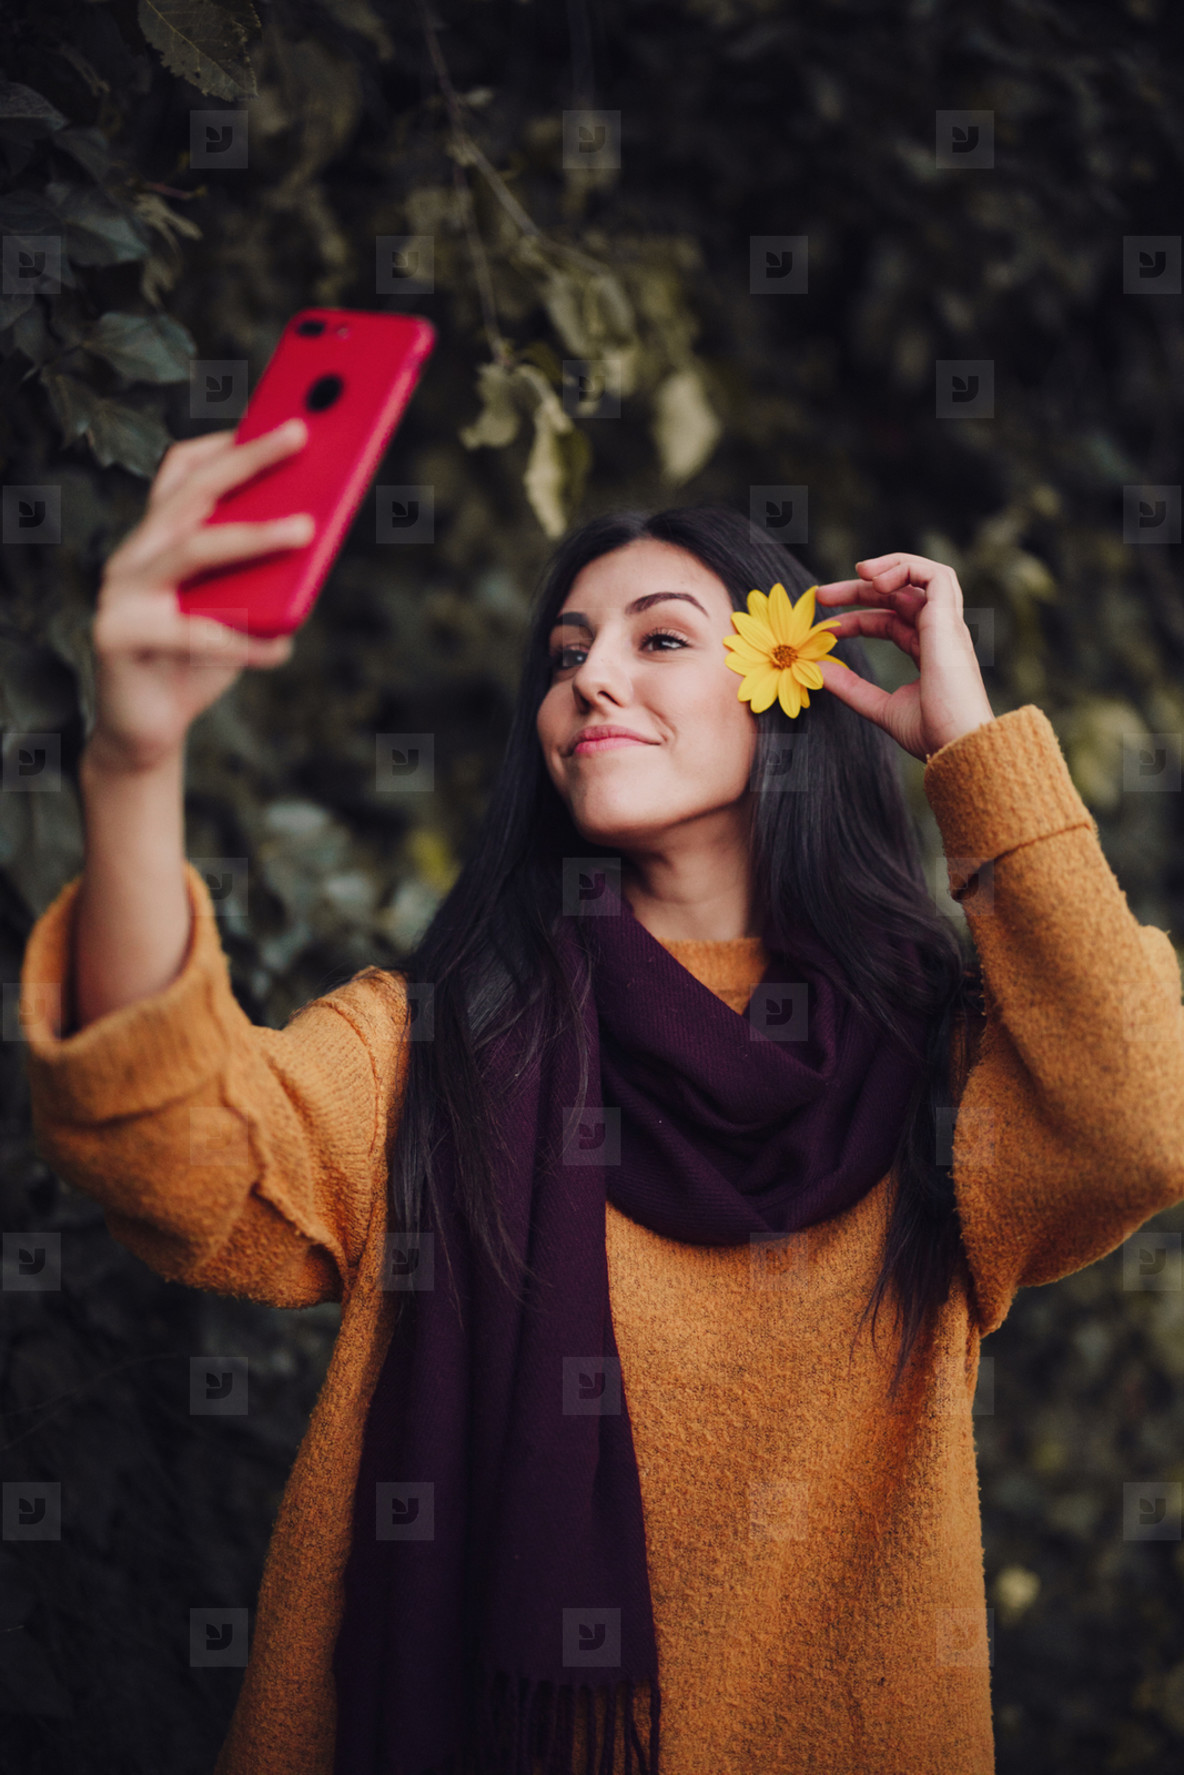 Woman taking a selfie with her phone with flower in her hair